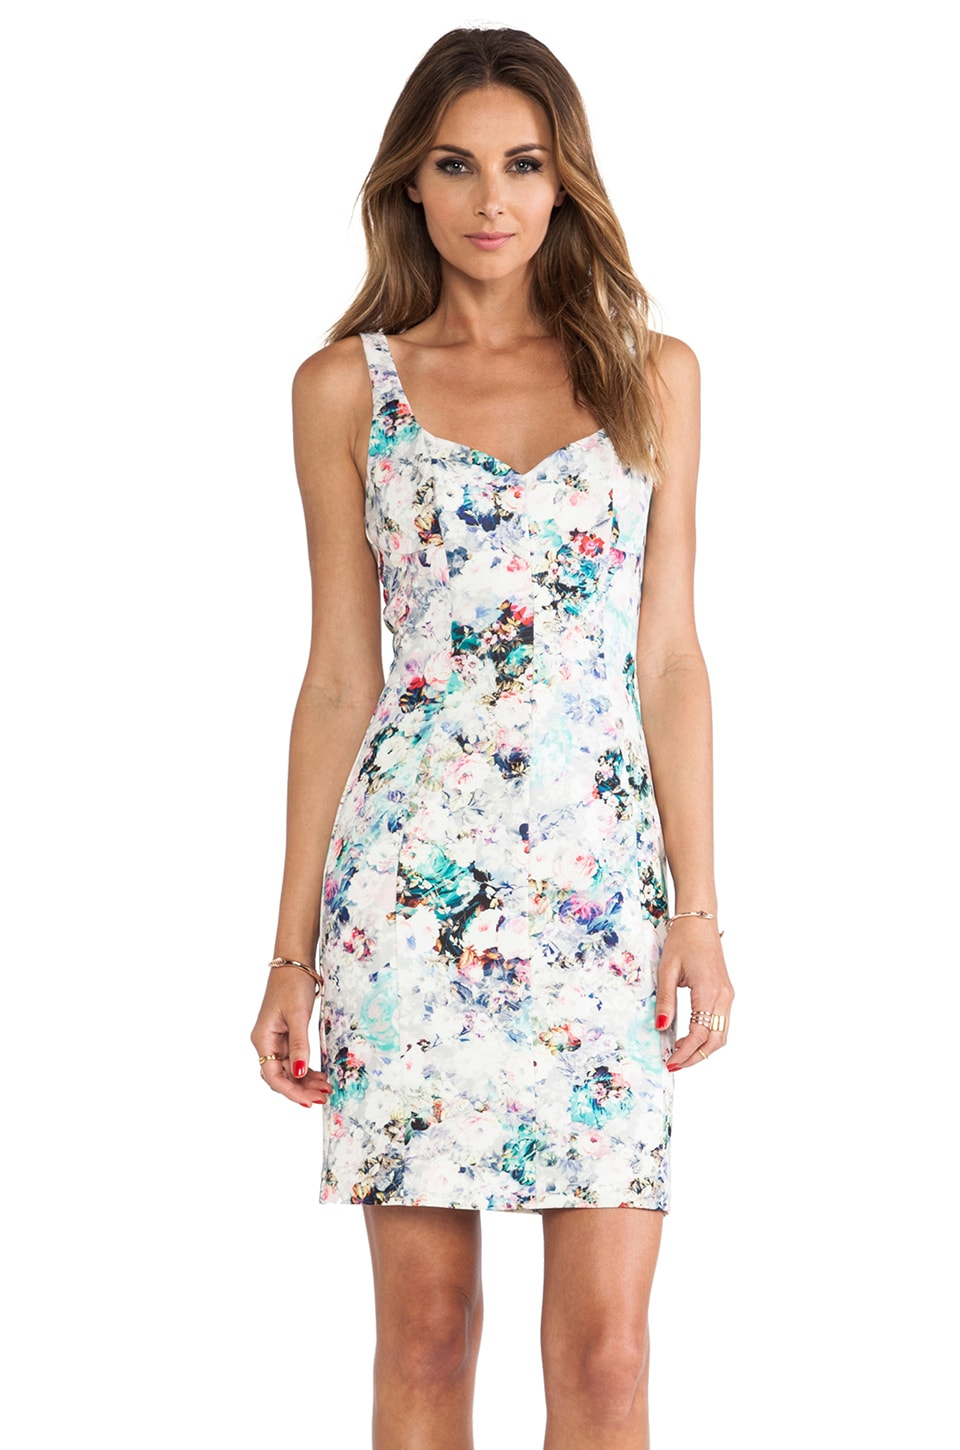 Black Halo Jace Sheath Mini Dress in Vintage Floral Print